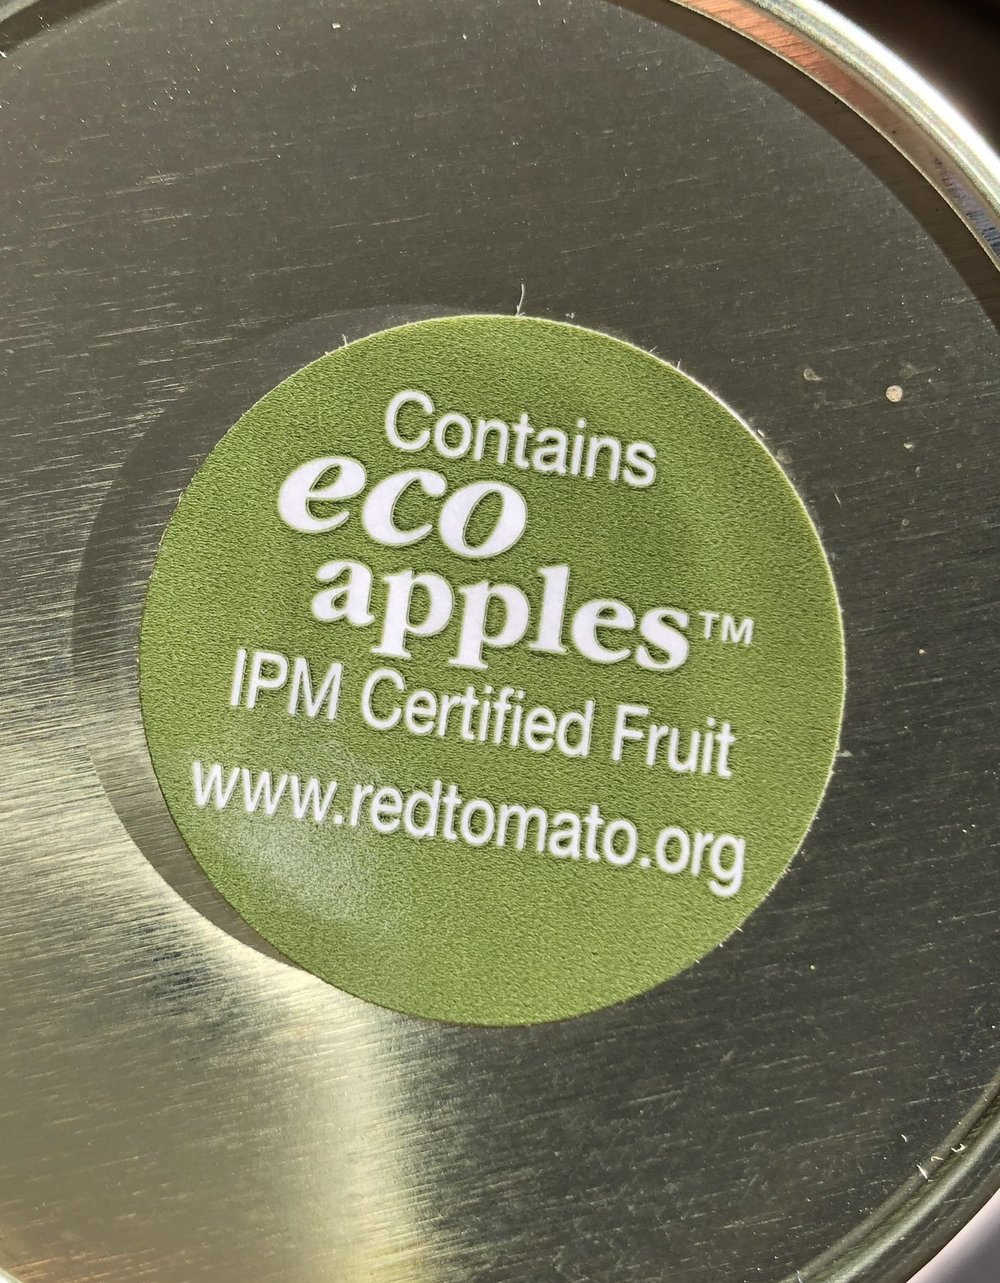 Made with Safe Eco-Apples!